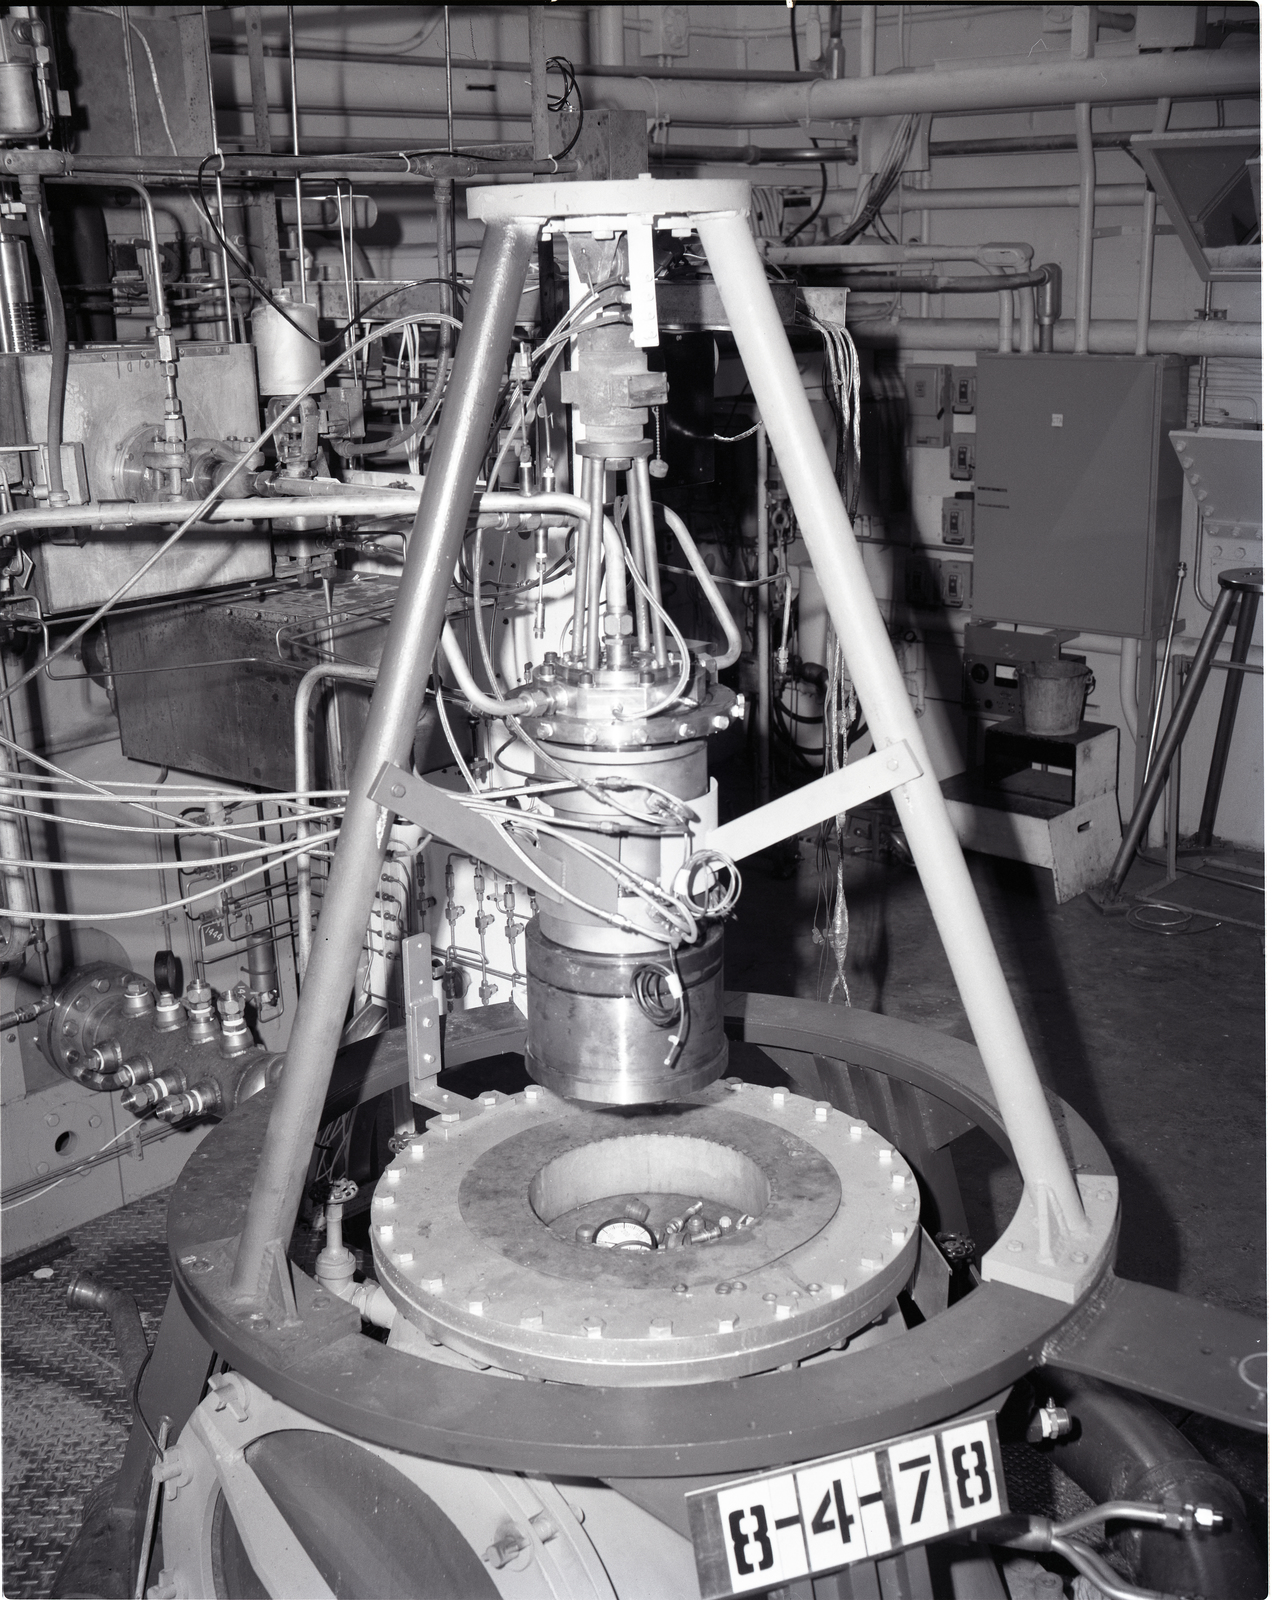 SOUTH 40 ROCKET ENGINE TEST FACILITY RETF ROCKET STAND INJECTOR 251 HYDROCARBON LIQUID OXYGEN LOX ASSEMBLY